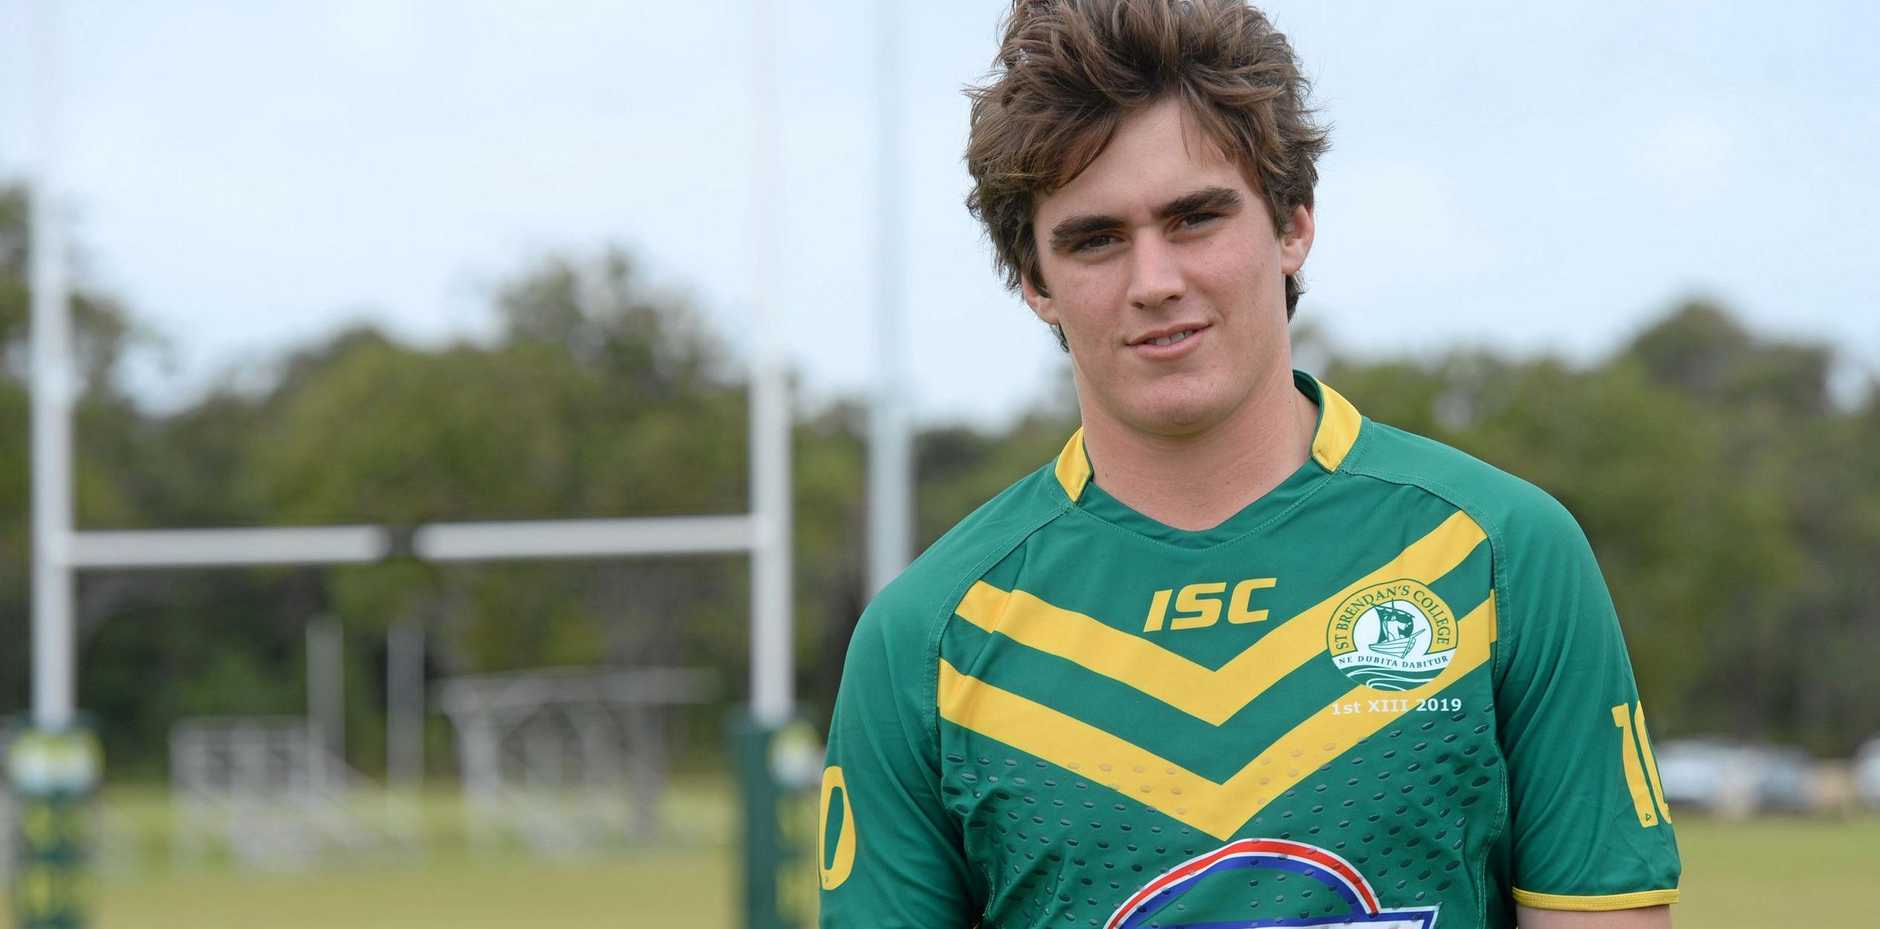 LEADING THE WAY: St Brendan's First XIII co-captain and back rower Bill Gunning will have a big part to play in his team's two crucial games in the Aaron Payne Cup in Mackay this week.